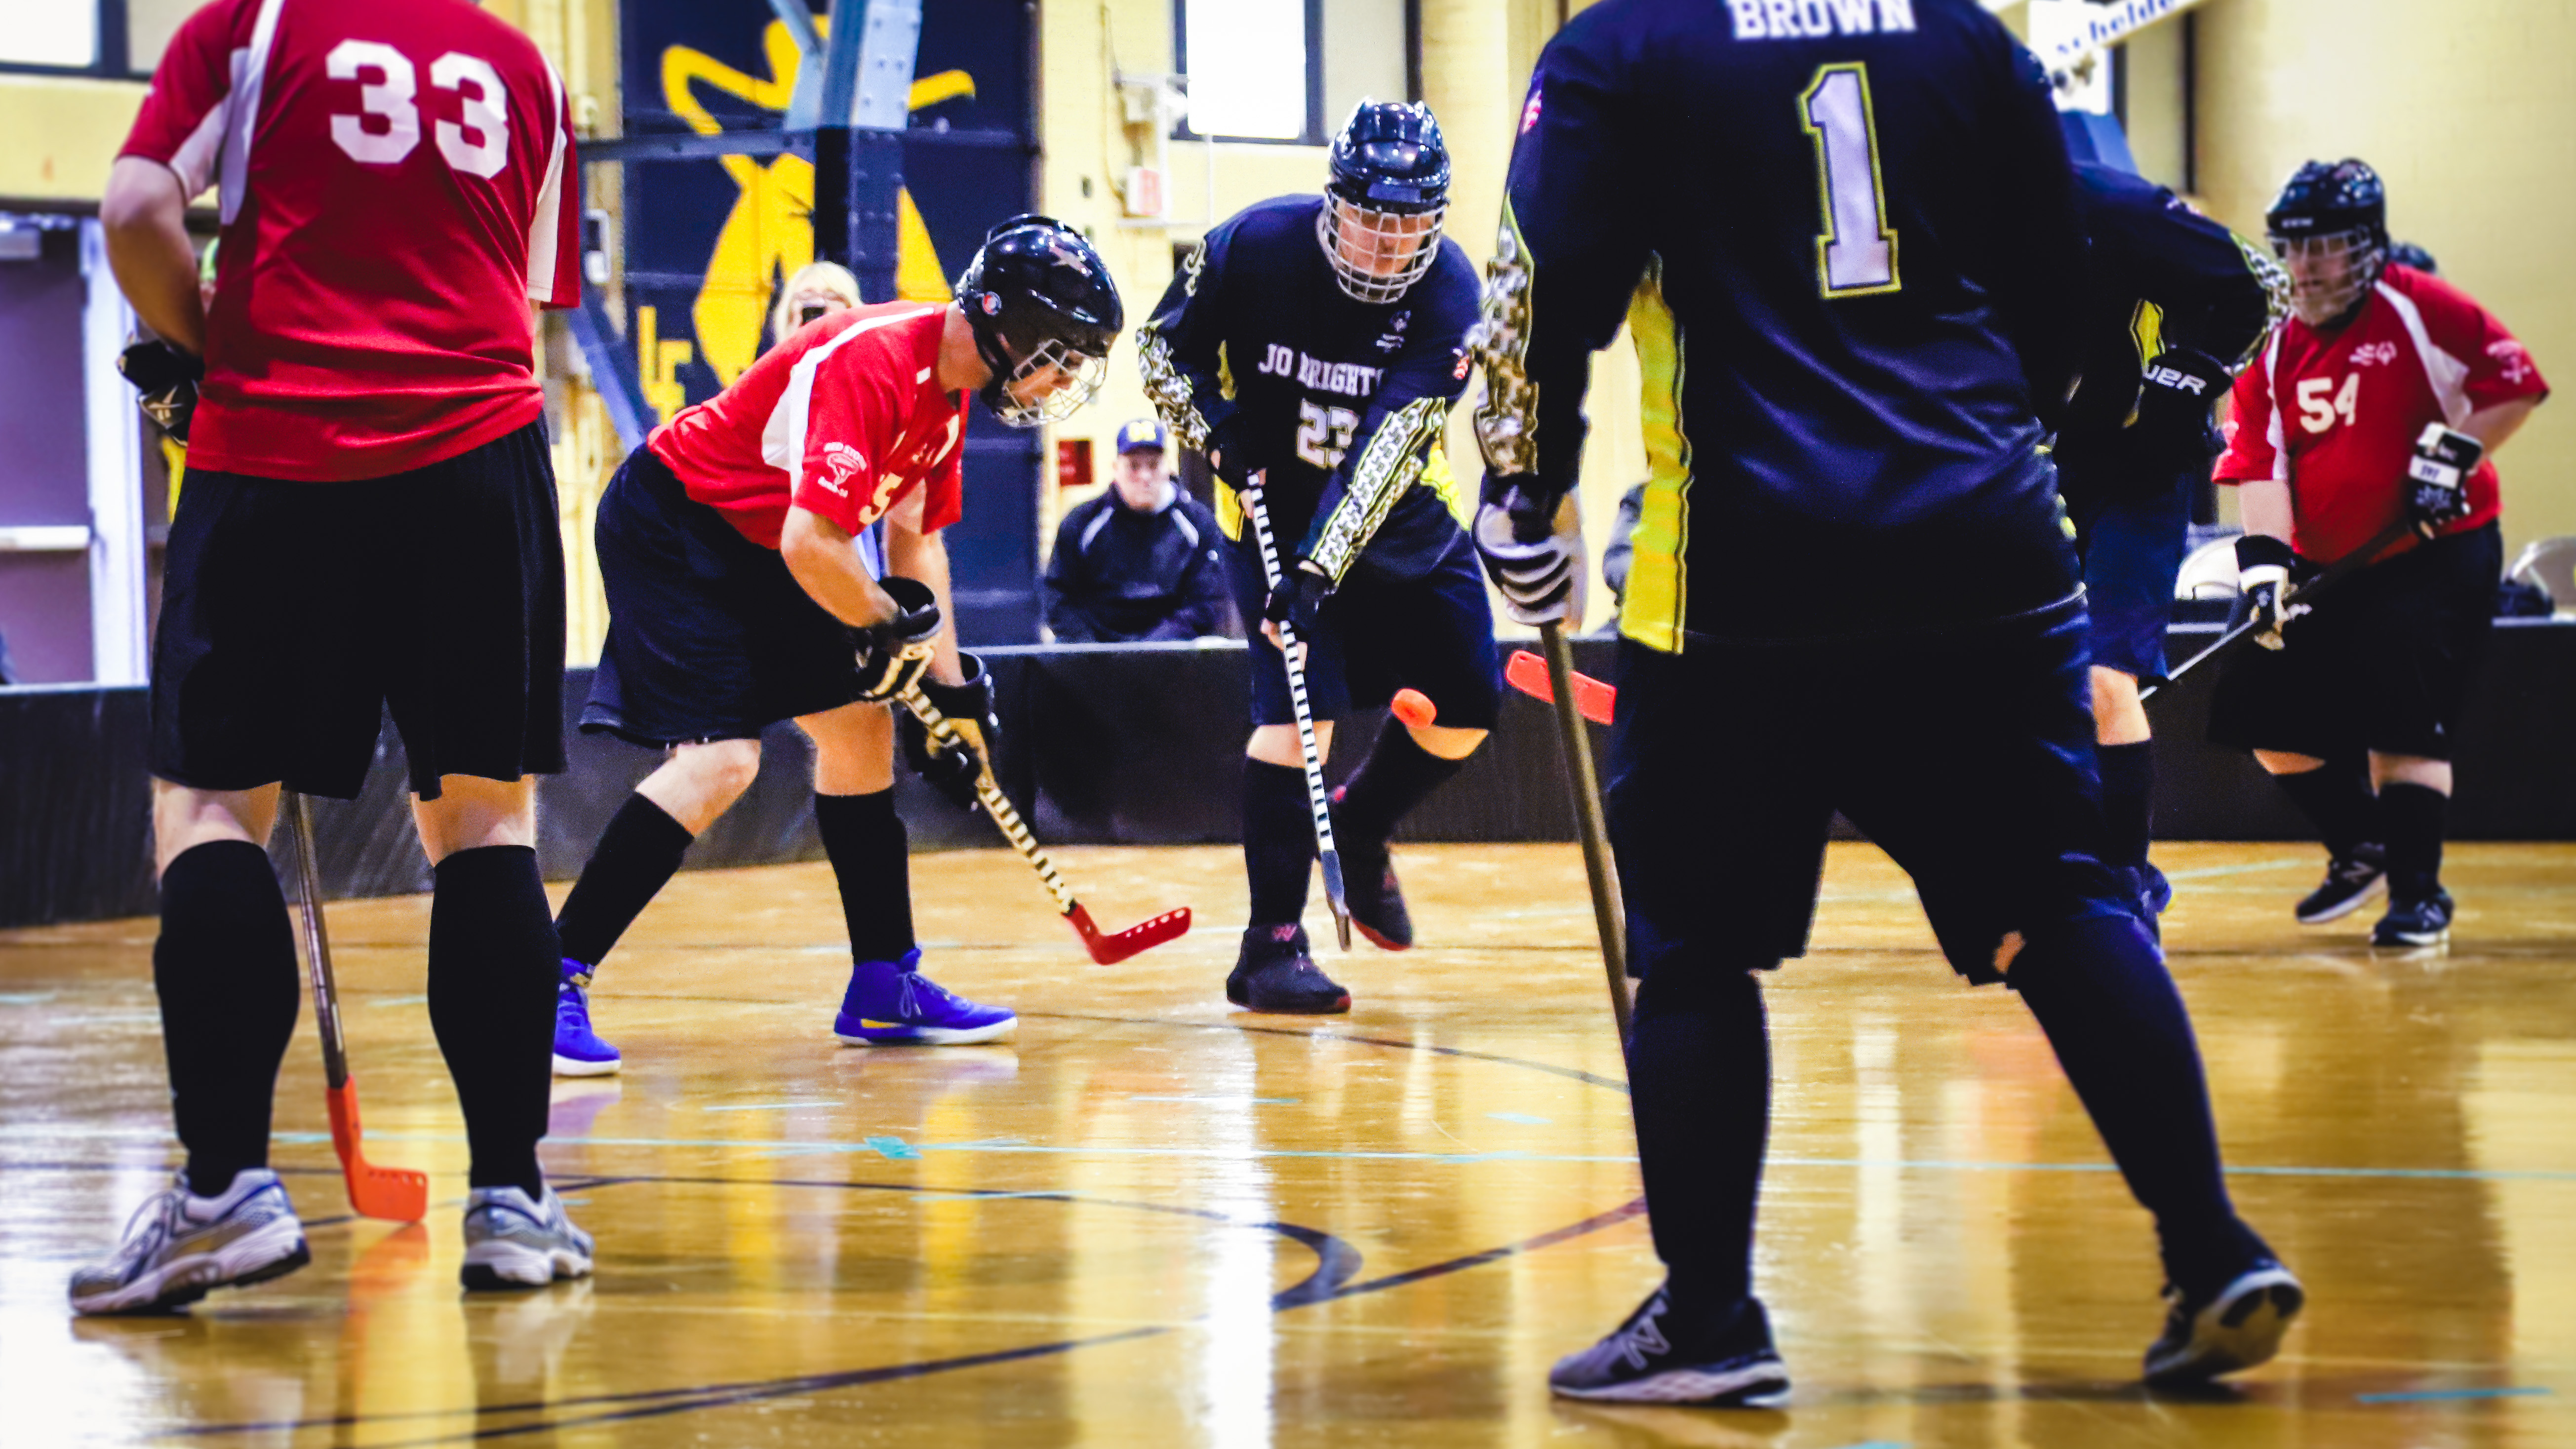 athletes on the court playing poly hockey